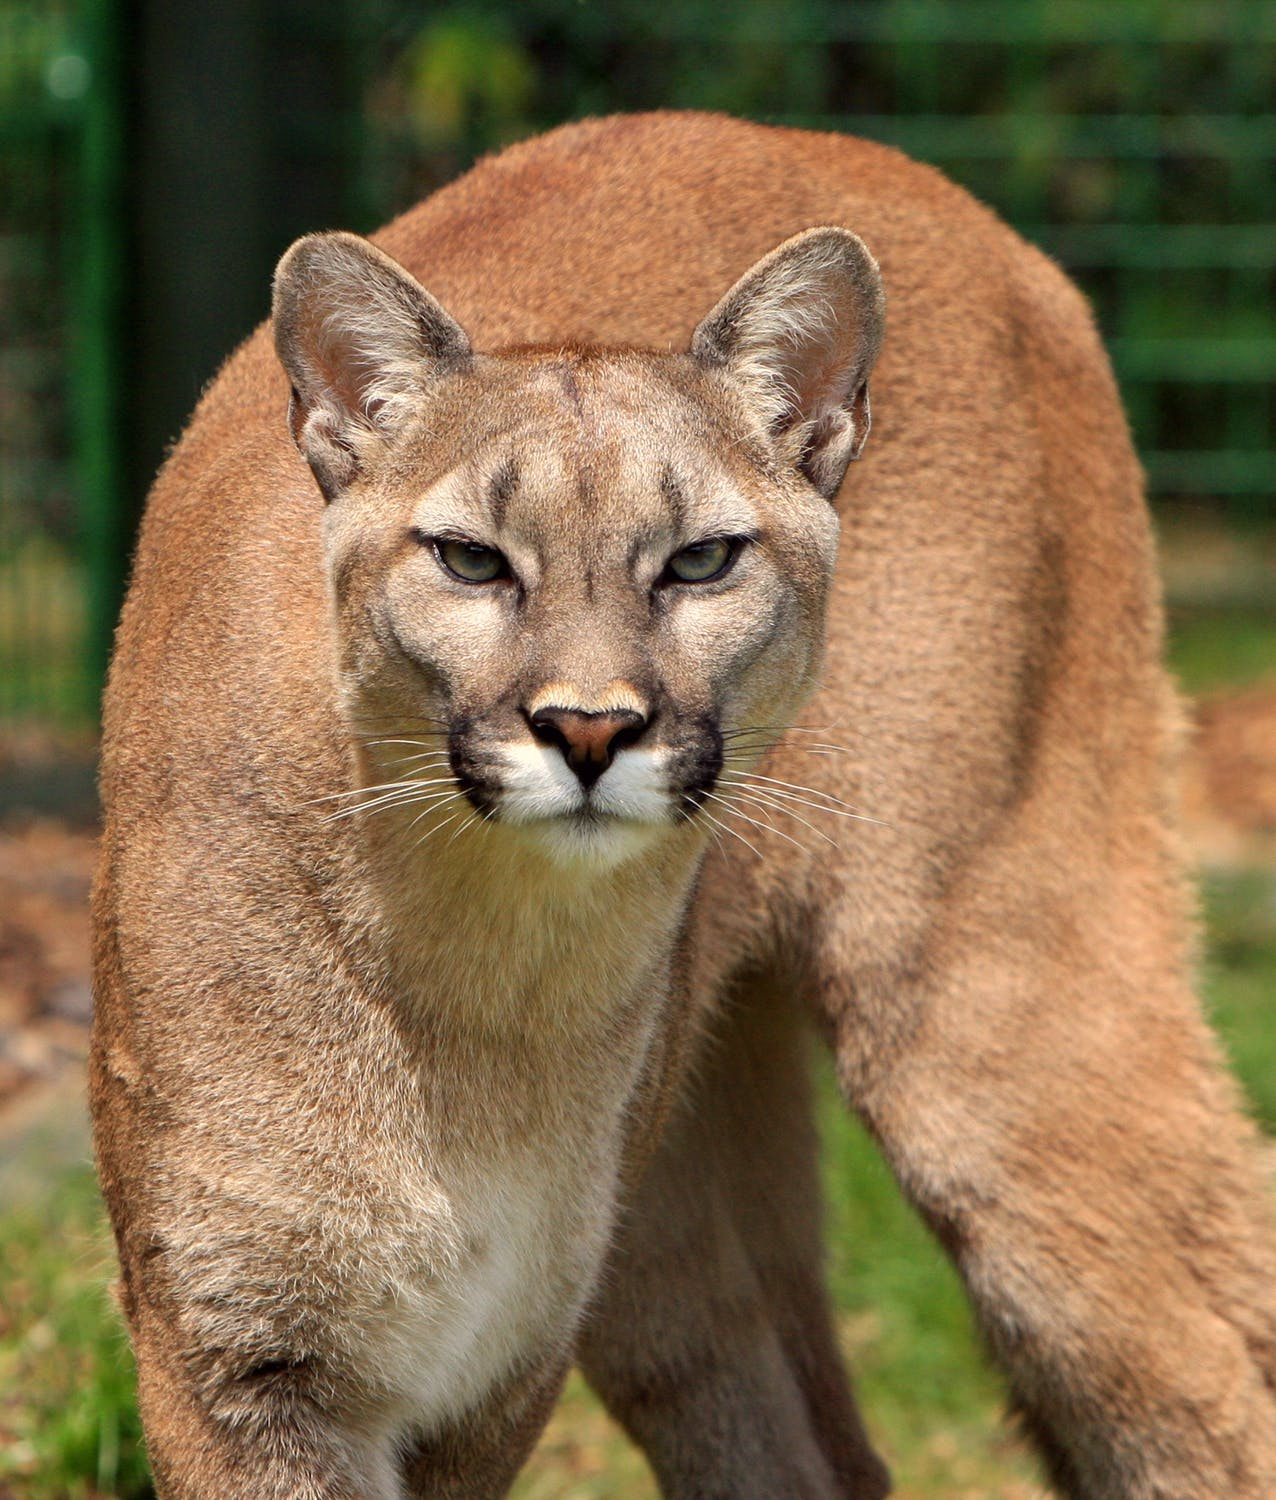 cougar-mountain-lion-puma-concolor-big-cat-53001